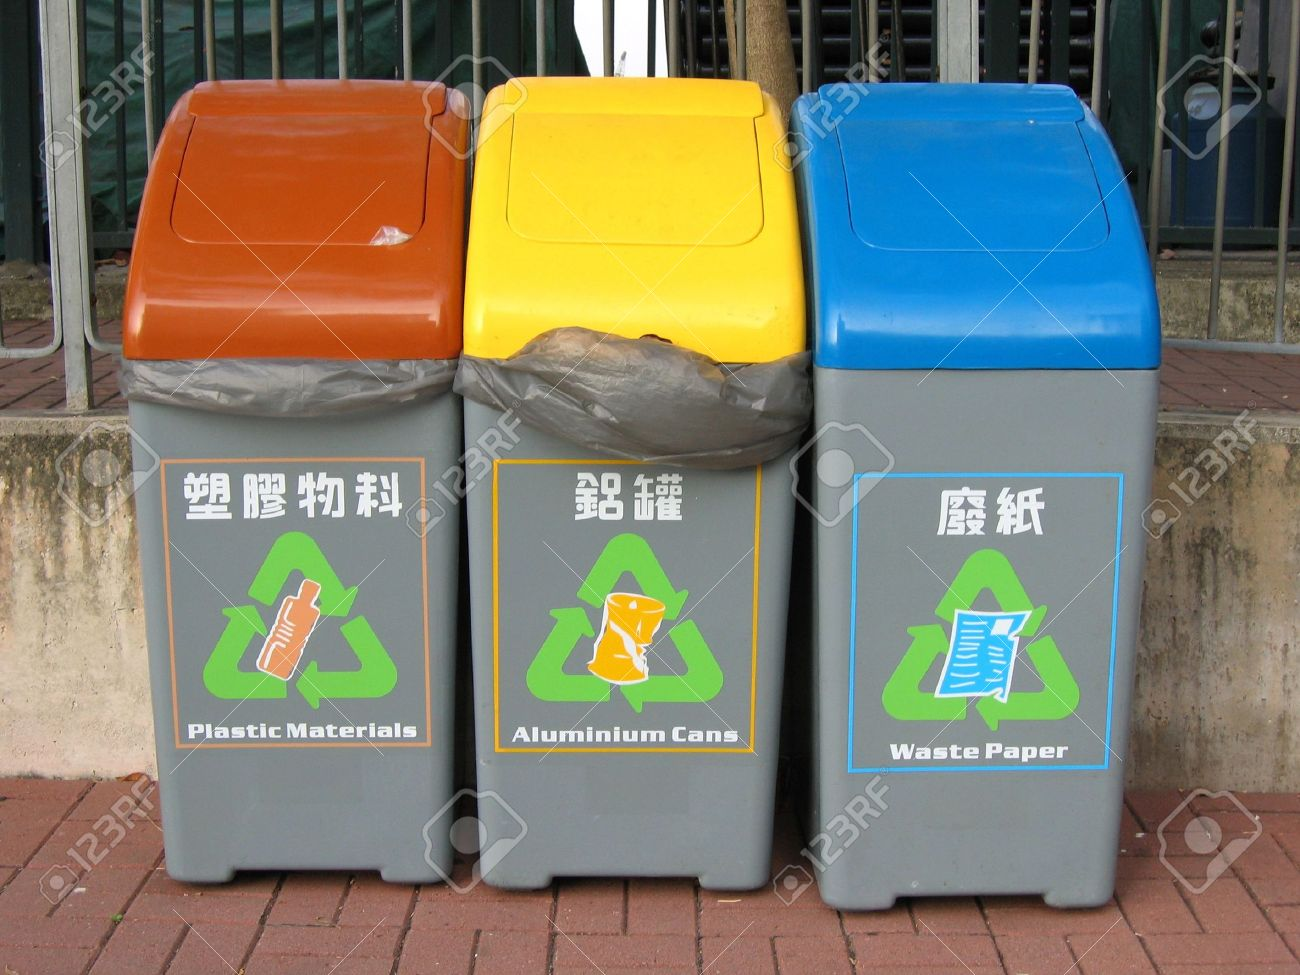 Why we need to recycle the paper,plastic and cans?